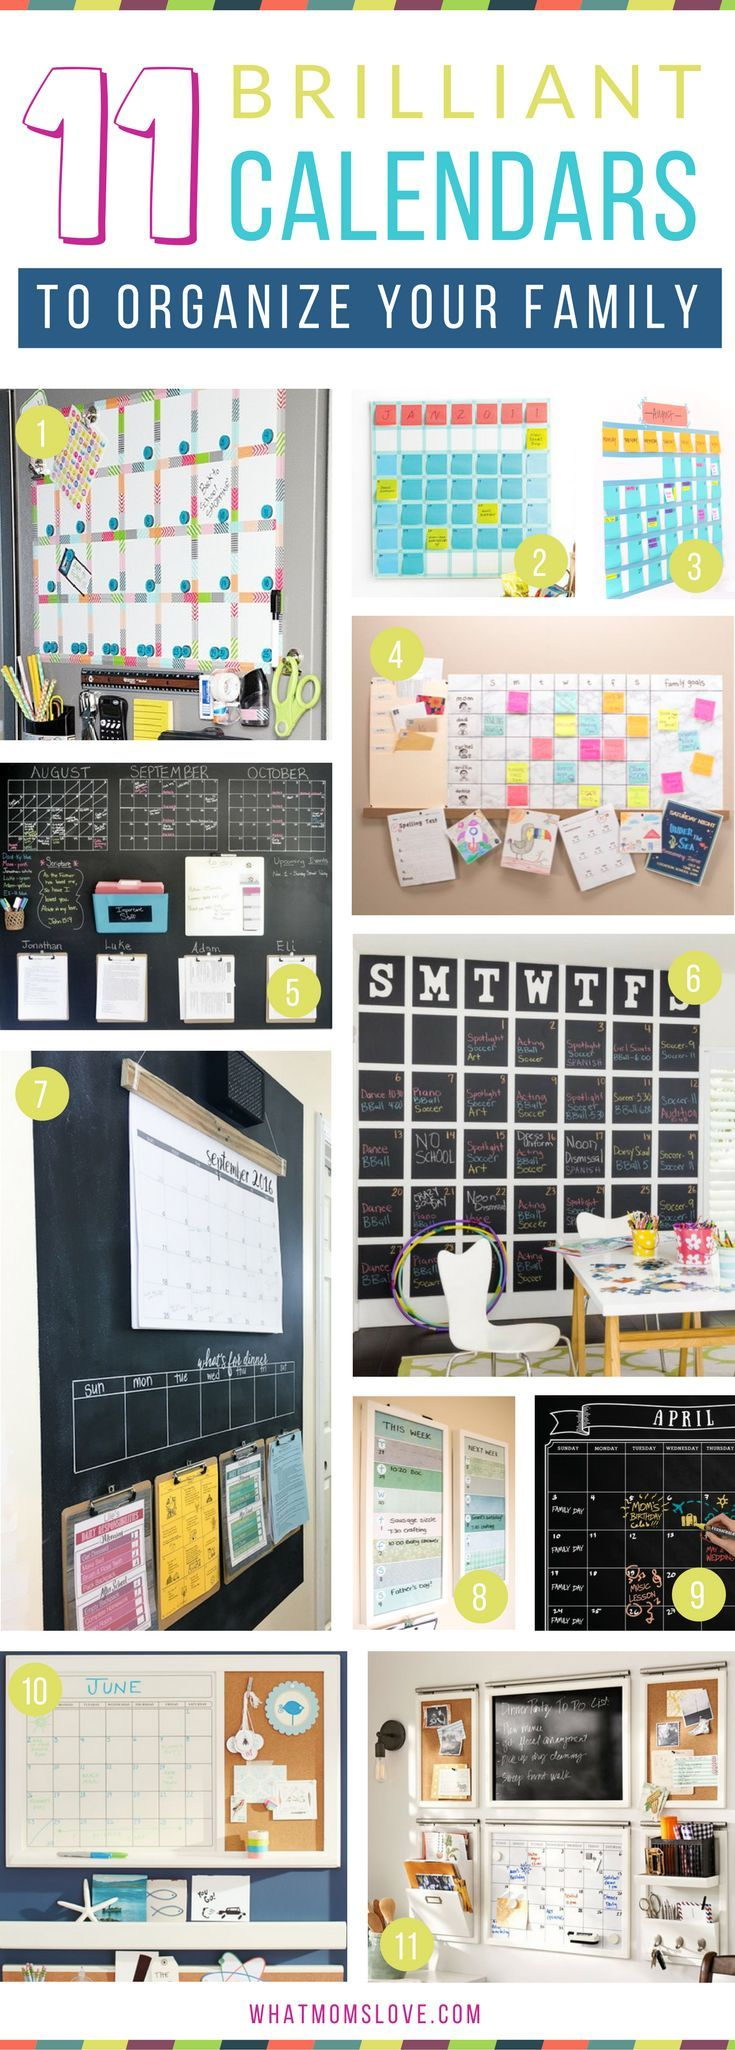 Kids Desk Calendar : Best ideas about diy calendar on pinterest work